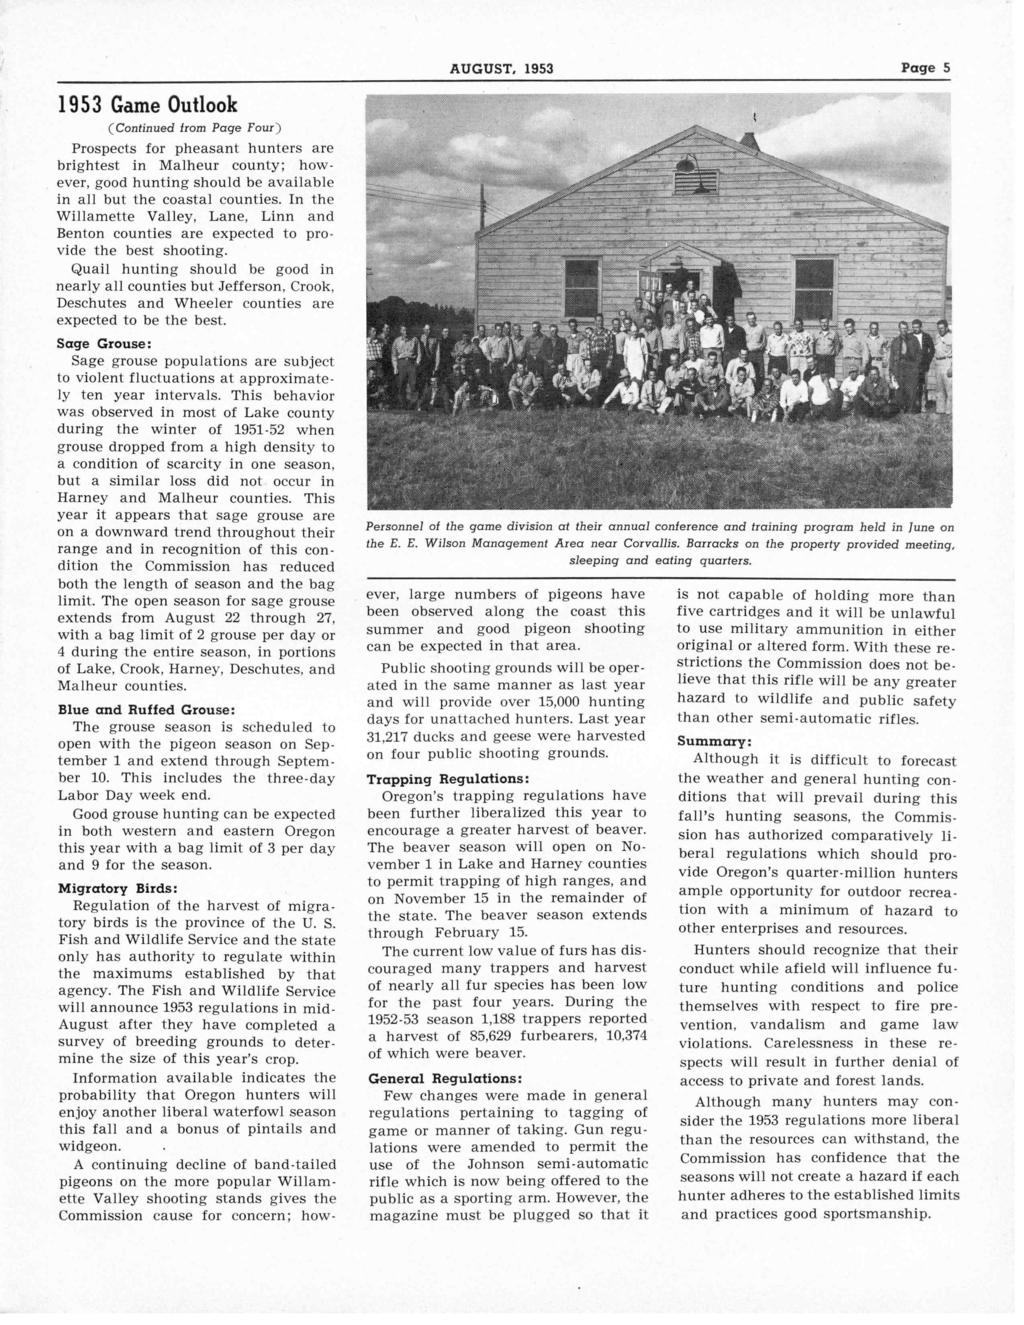 AUGUST, 1953 Page 5 1953 Game Outlook (Continued from Page Four) Prospects for pheasant hunters are brightest in Malheur county; however, good hunting should be available in all but the coastal